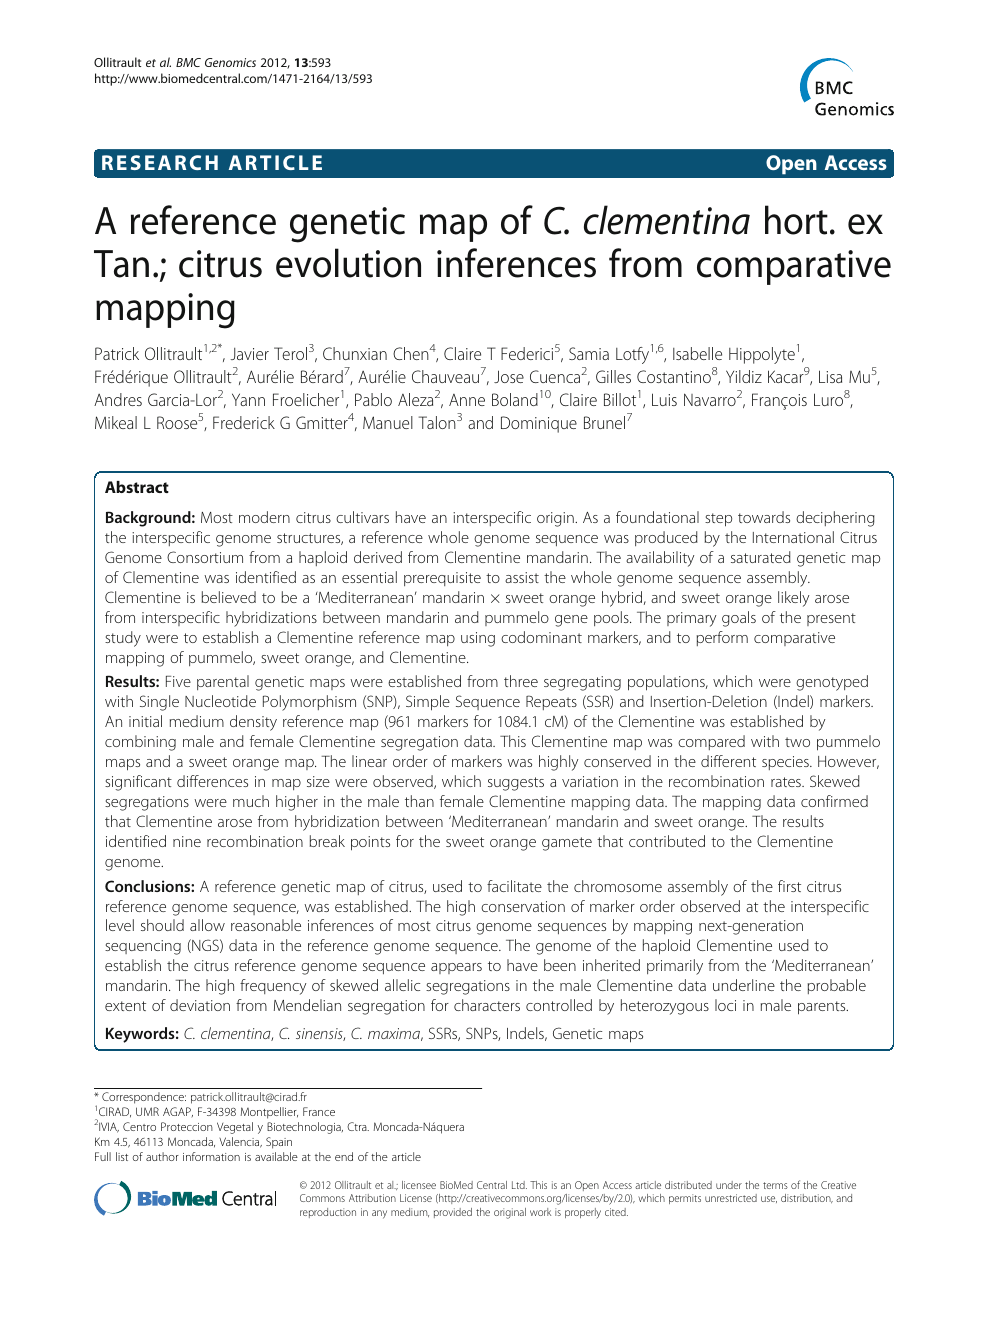 Www Cia Corse Fr a reference genetic map of c. clementina hort. ex tan